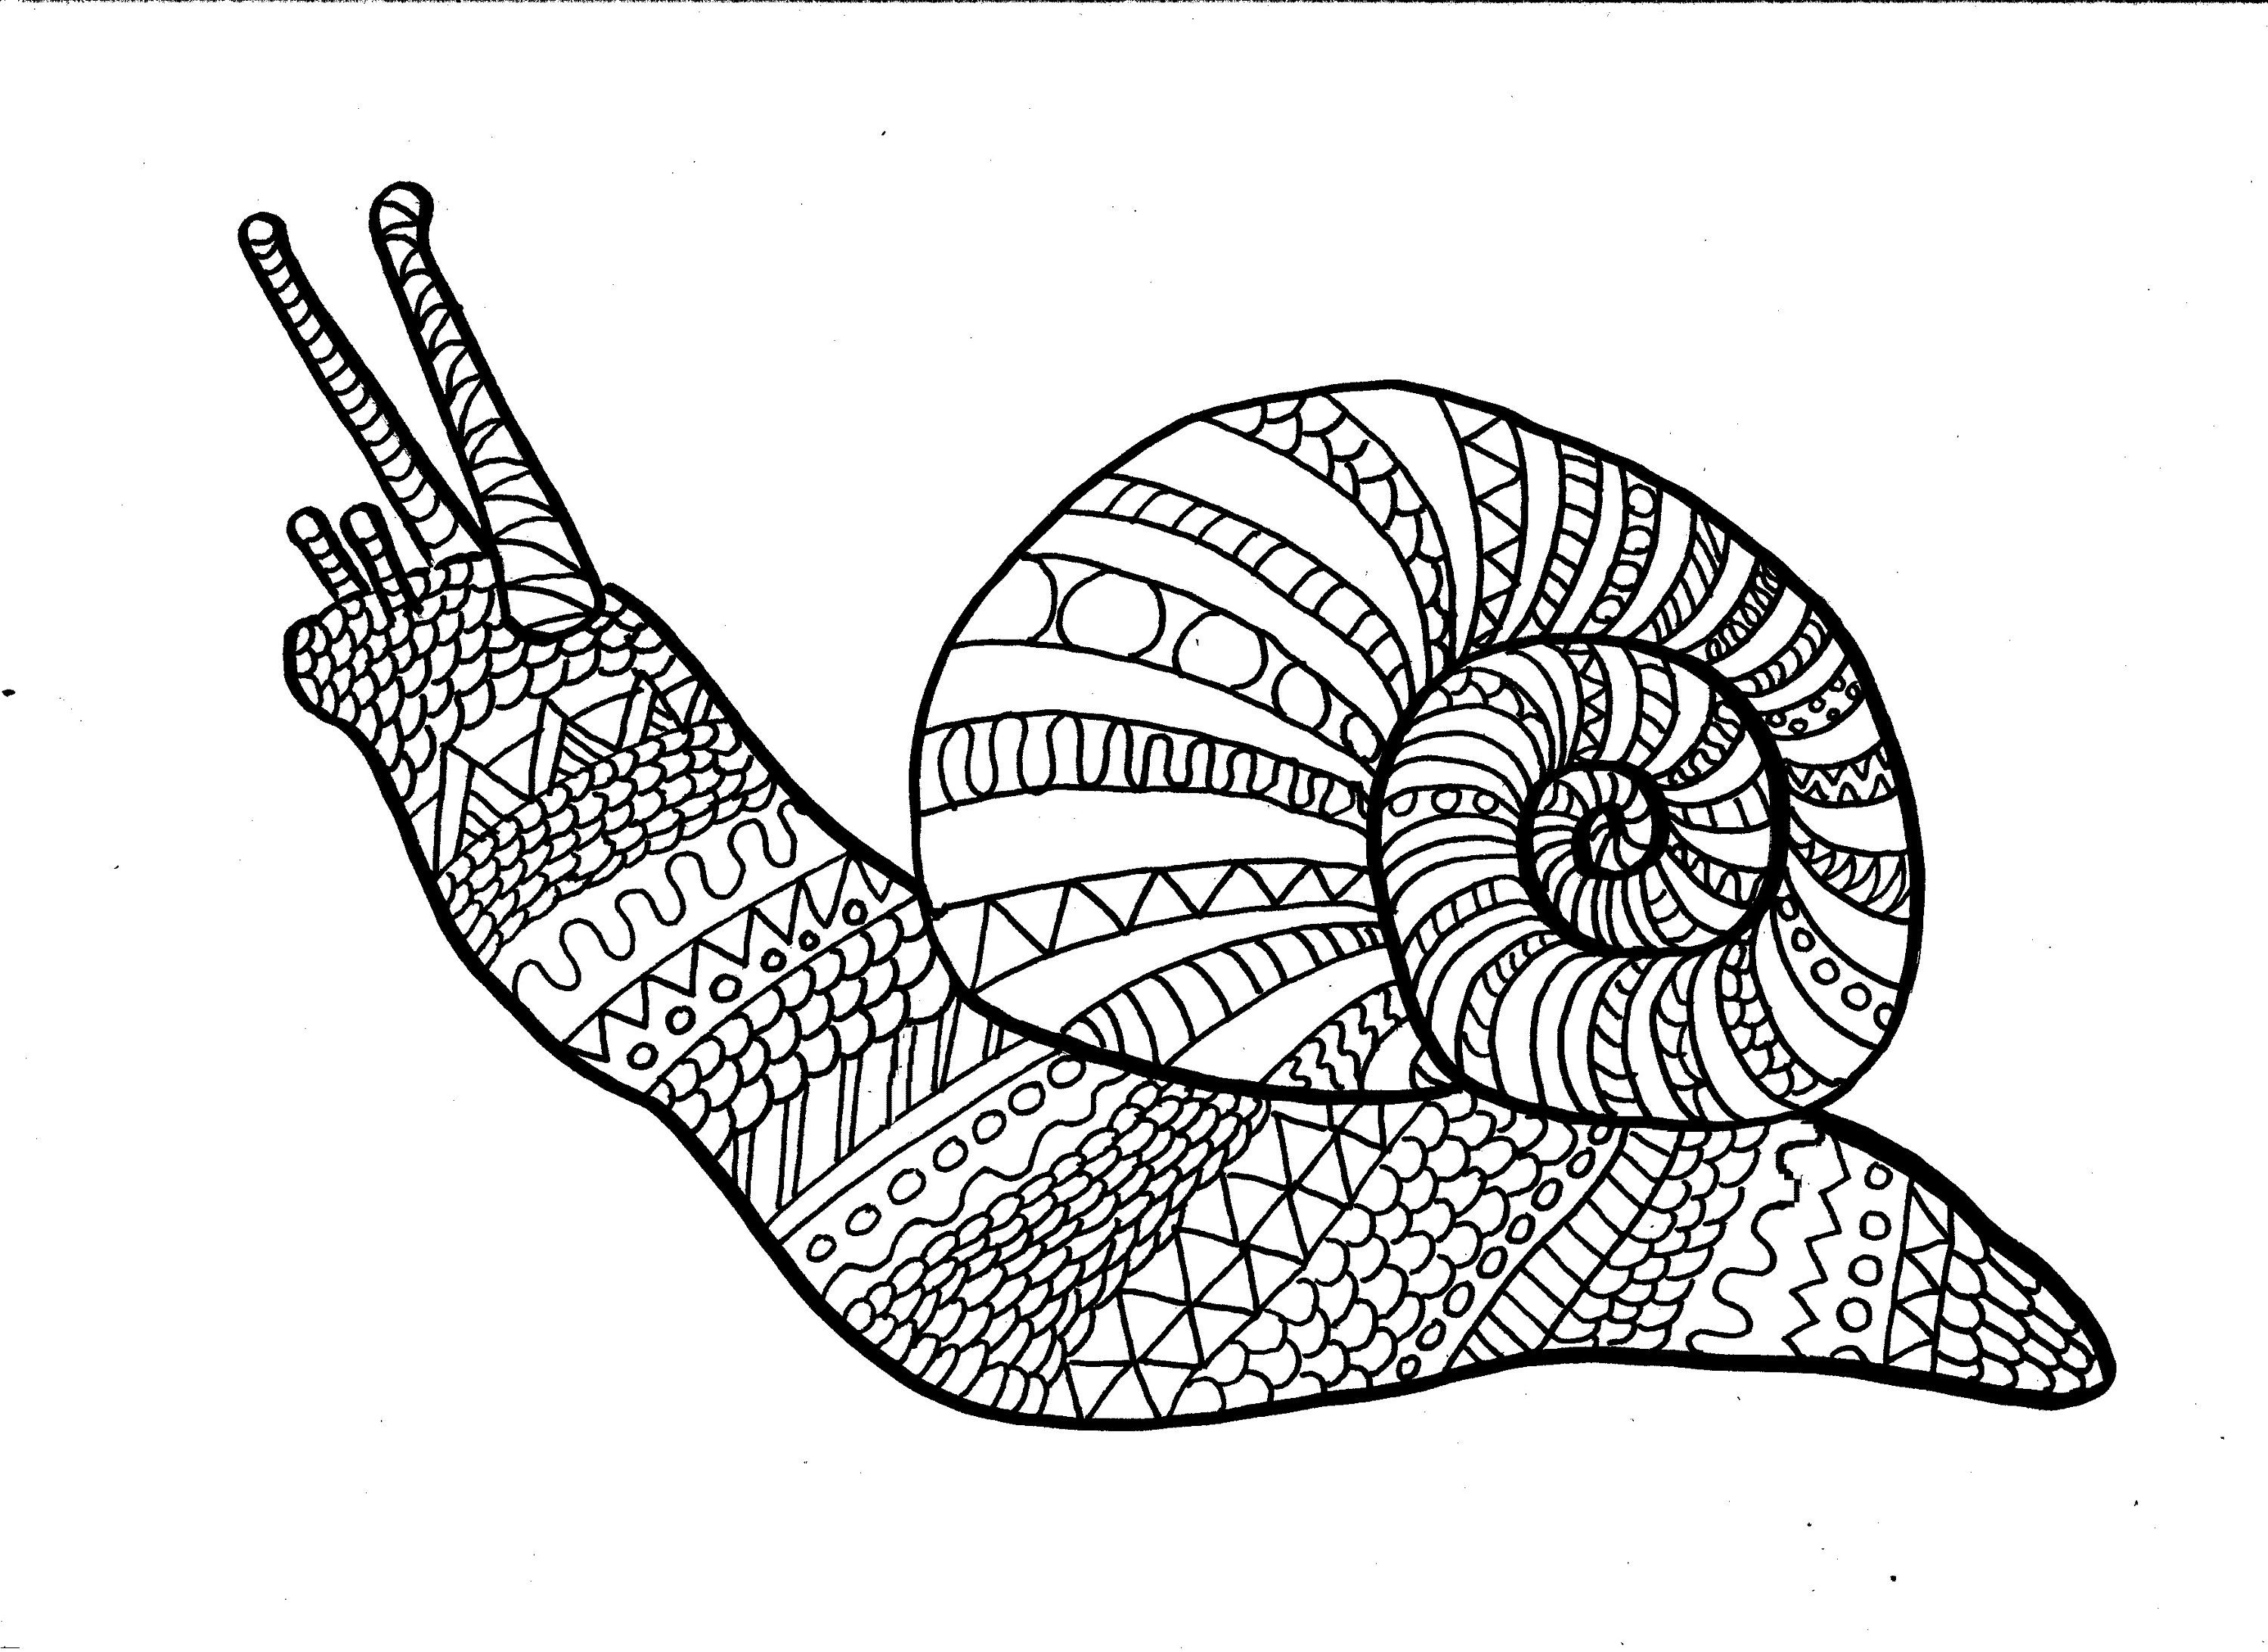 Snail colouring page, adult colouring page, digital